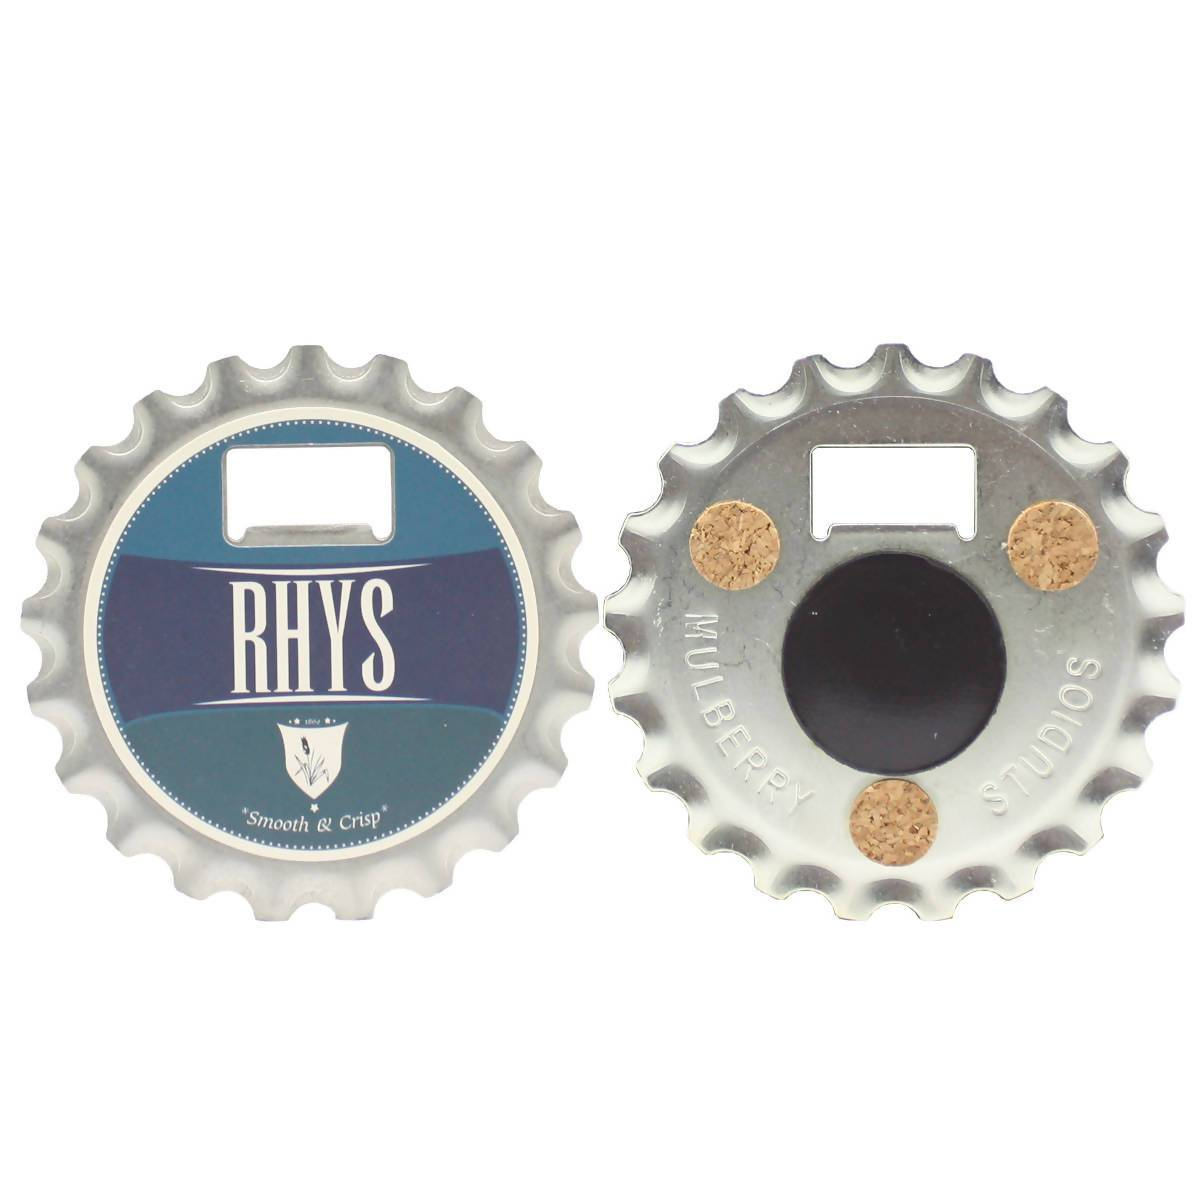 BOTTLE BUSTER - Best Bottle Opener : Rhys - Bottle Openers - La Belle Collection - Naiise